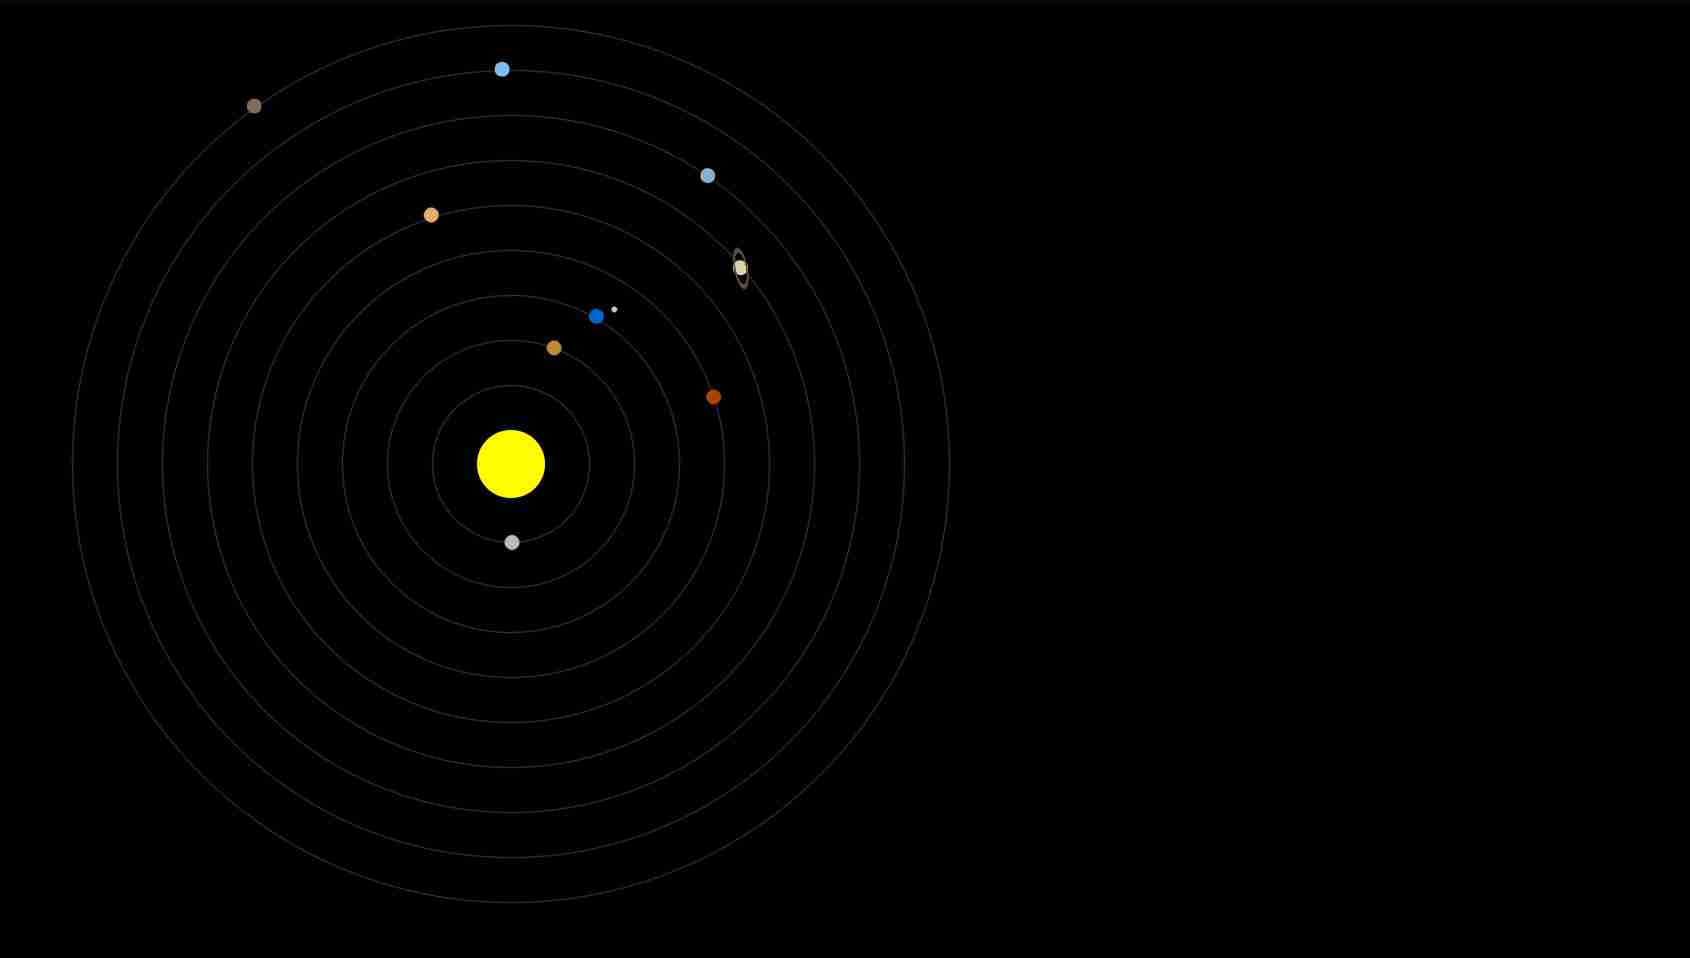 Astronomy html5 and css3